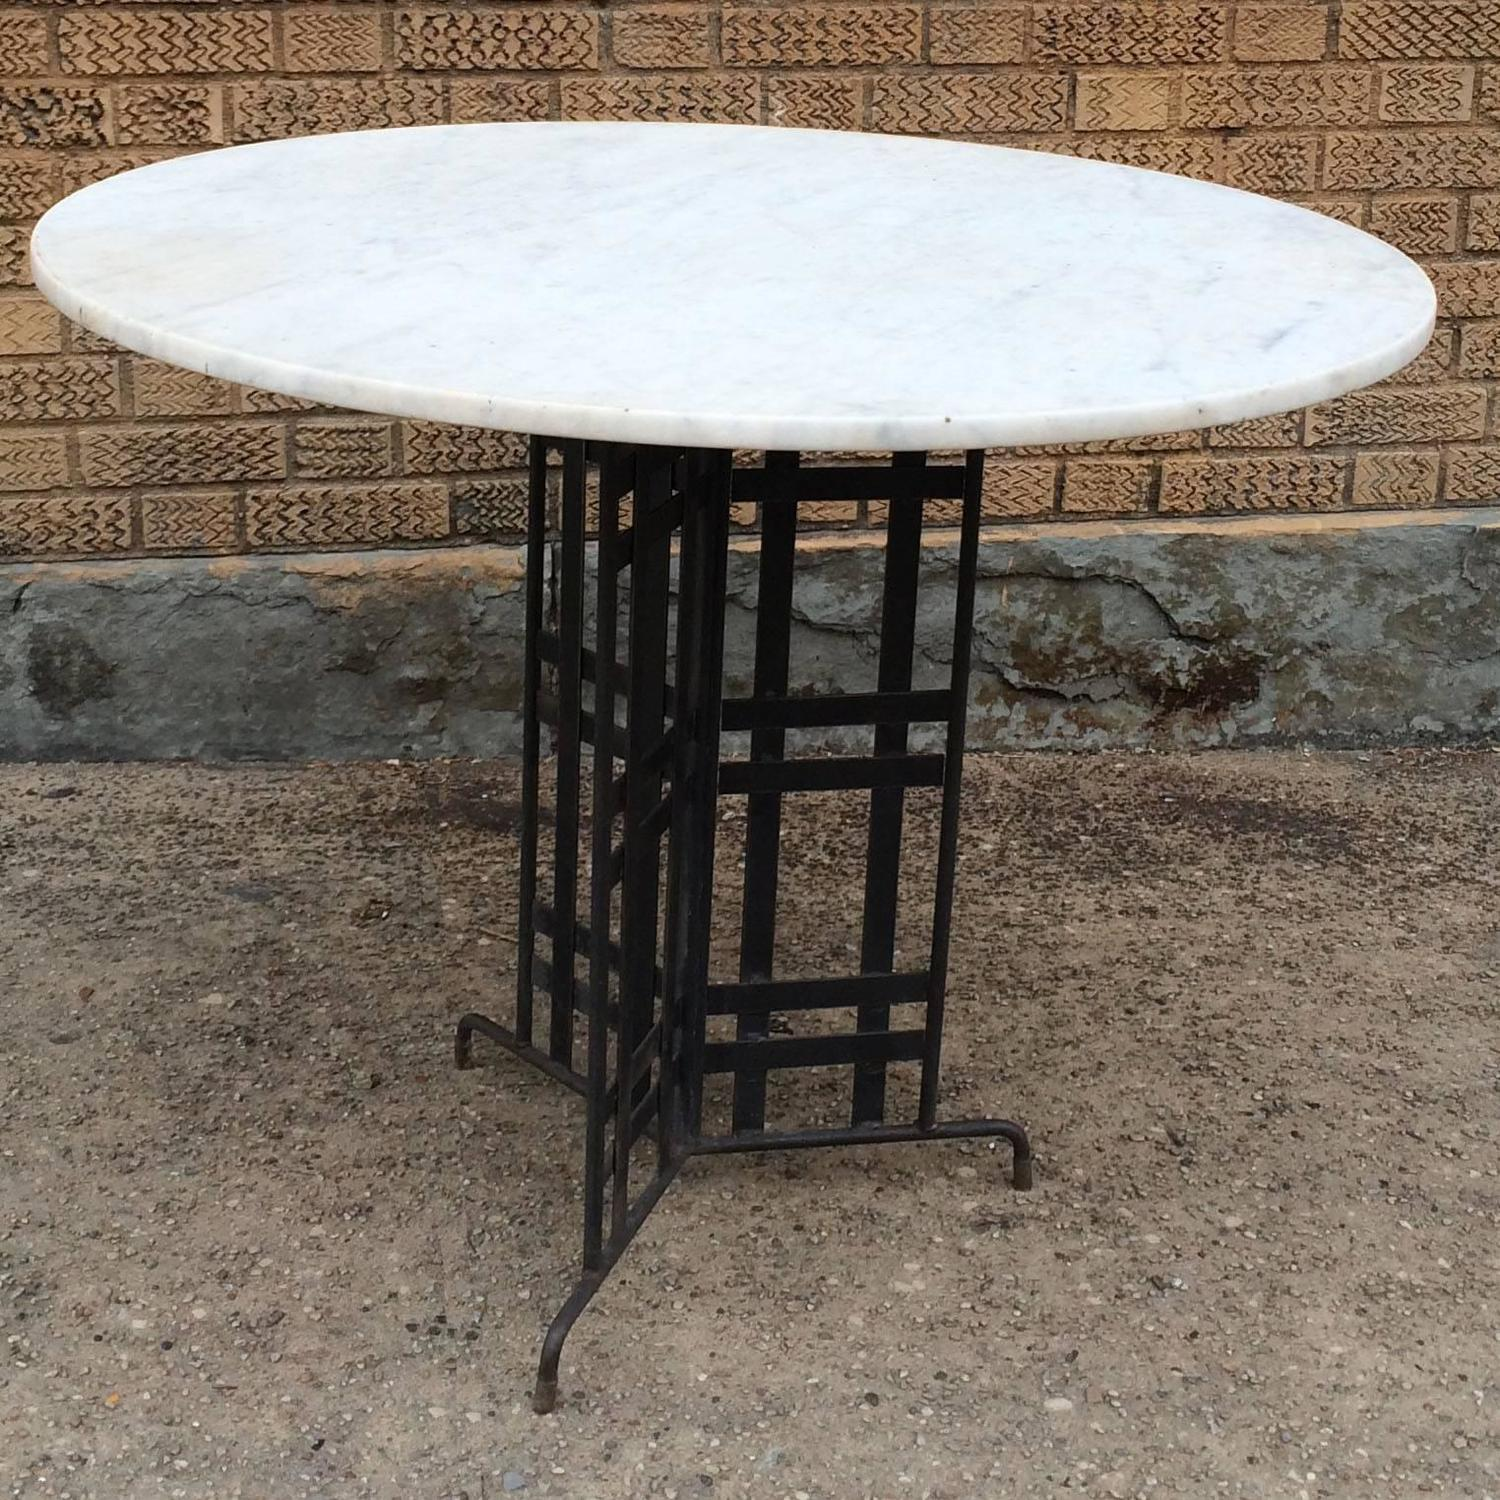 The Foundry Ii Cafe Rollins Dining Table Art Furniture: Marble Bistro Café Table With Architectural Wrought Iron